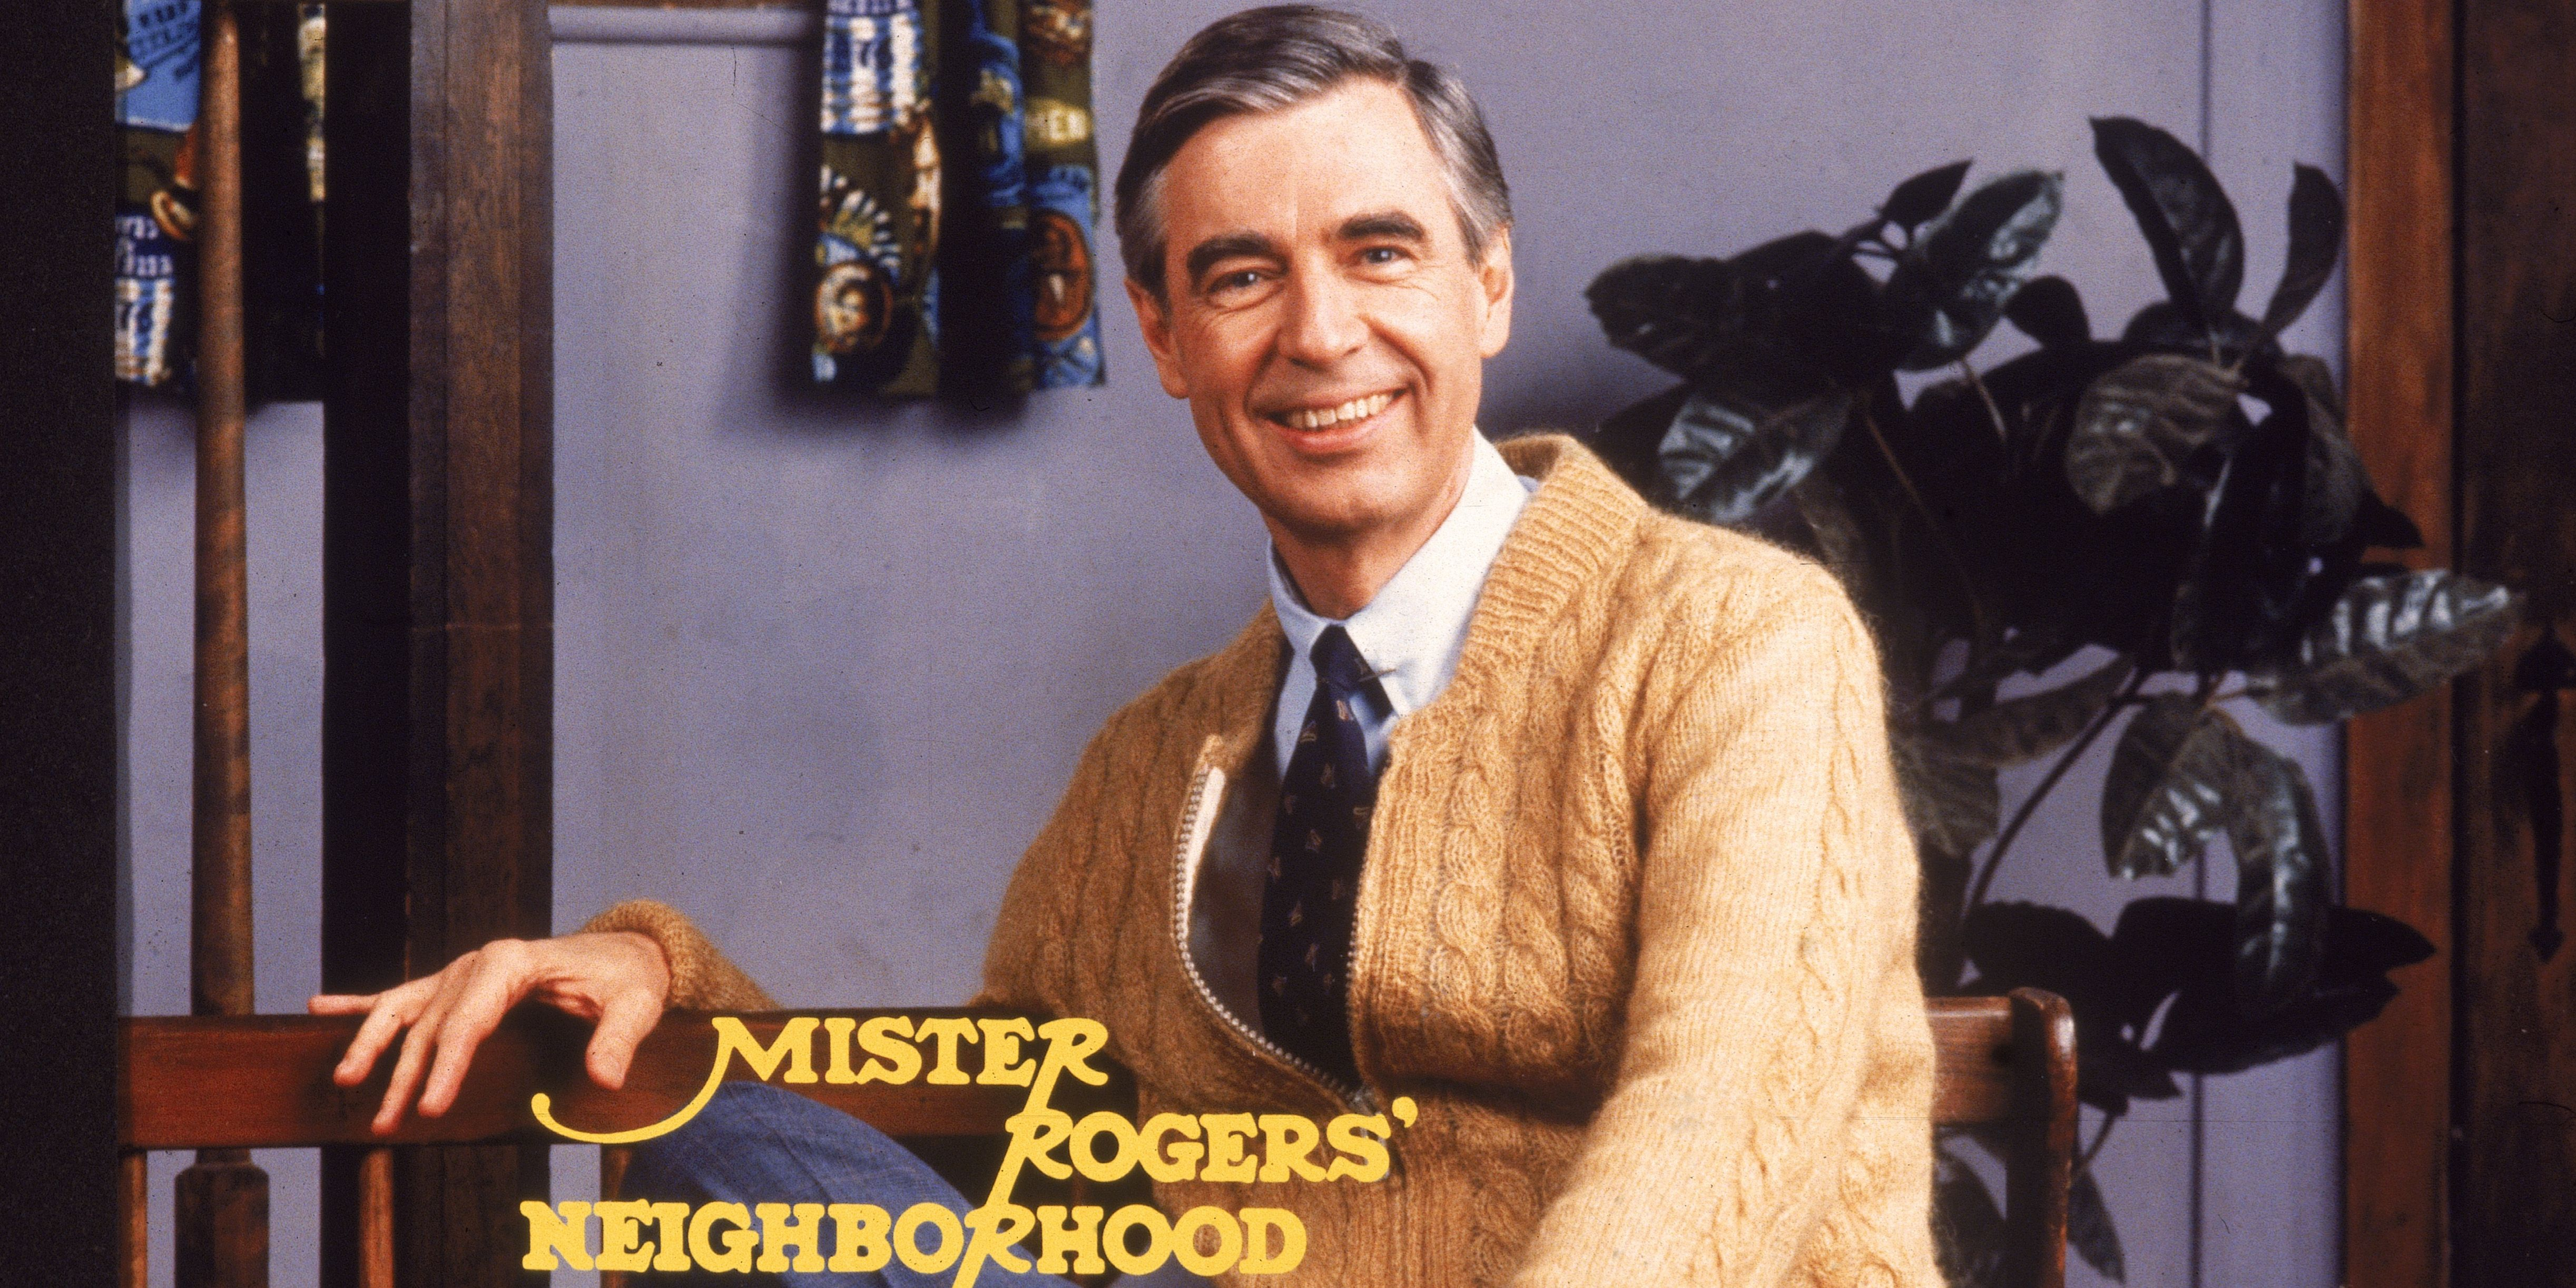 Mister Rogers Facts and Trivia - Fred Rogers Facts